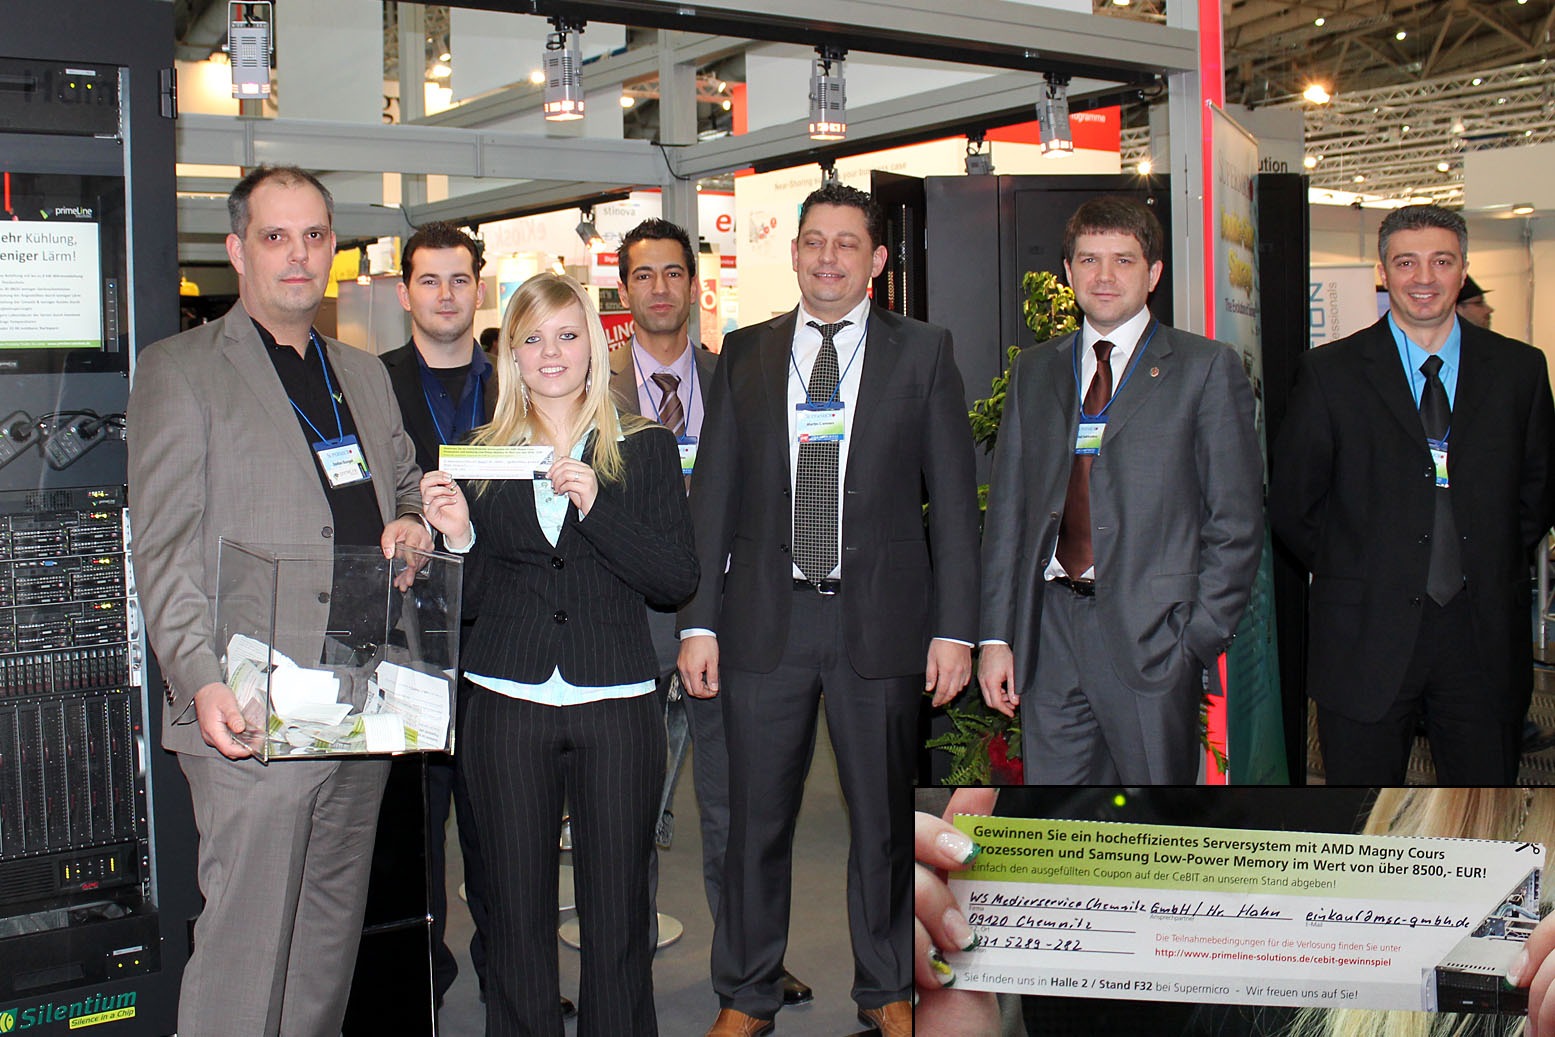 CeBIT 2011 - Verlosung High-Efficiency Serversystem mit AMD Opteron 12-Core Prozessoren